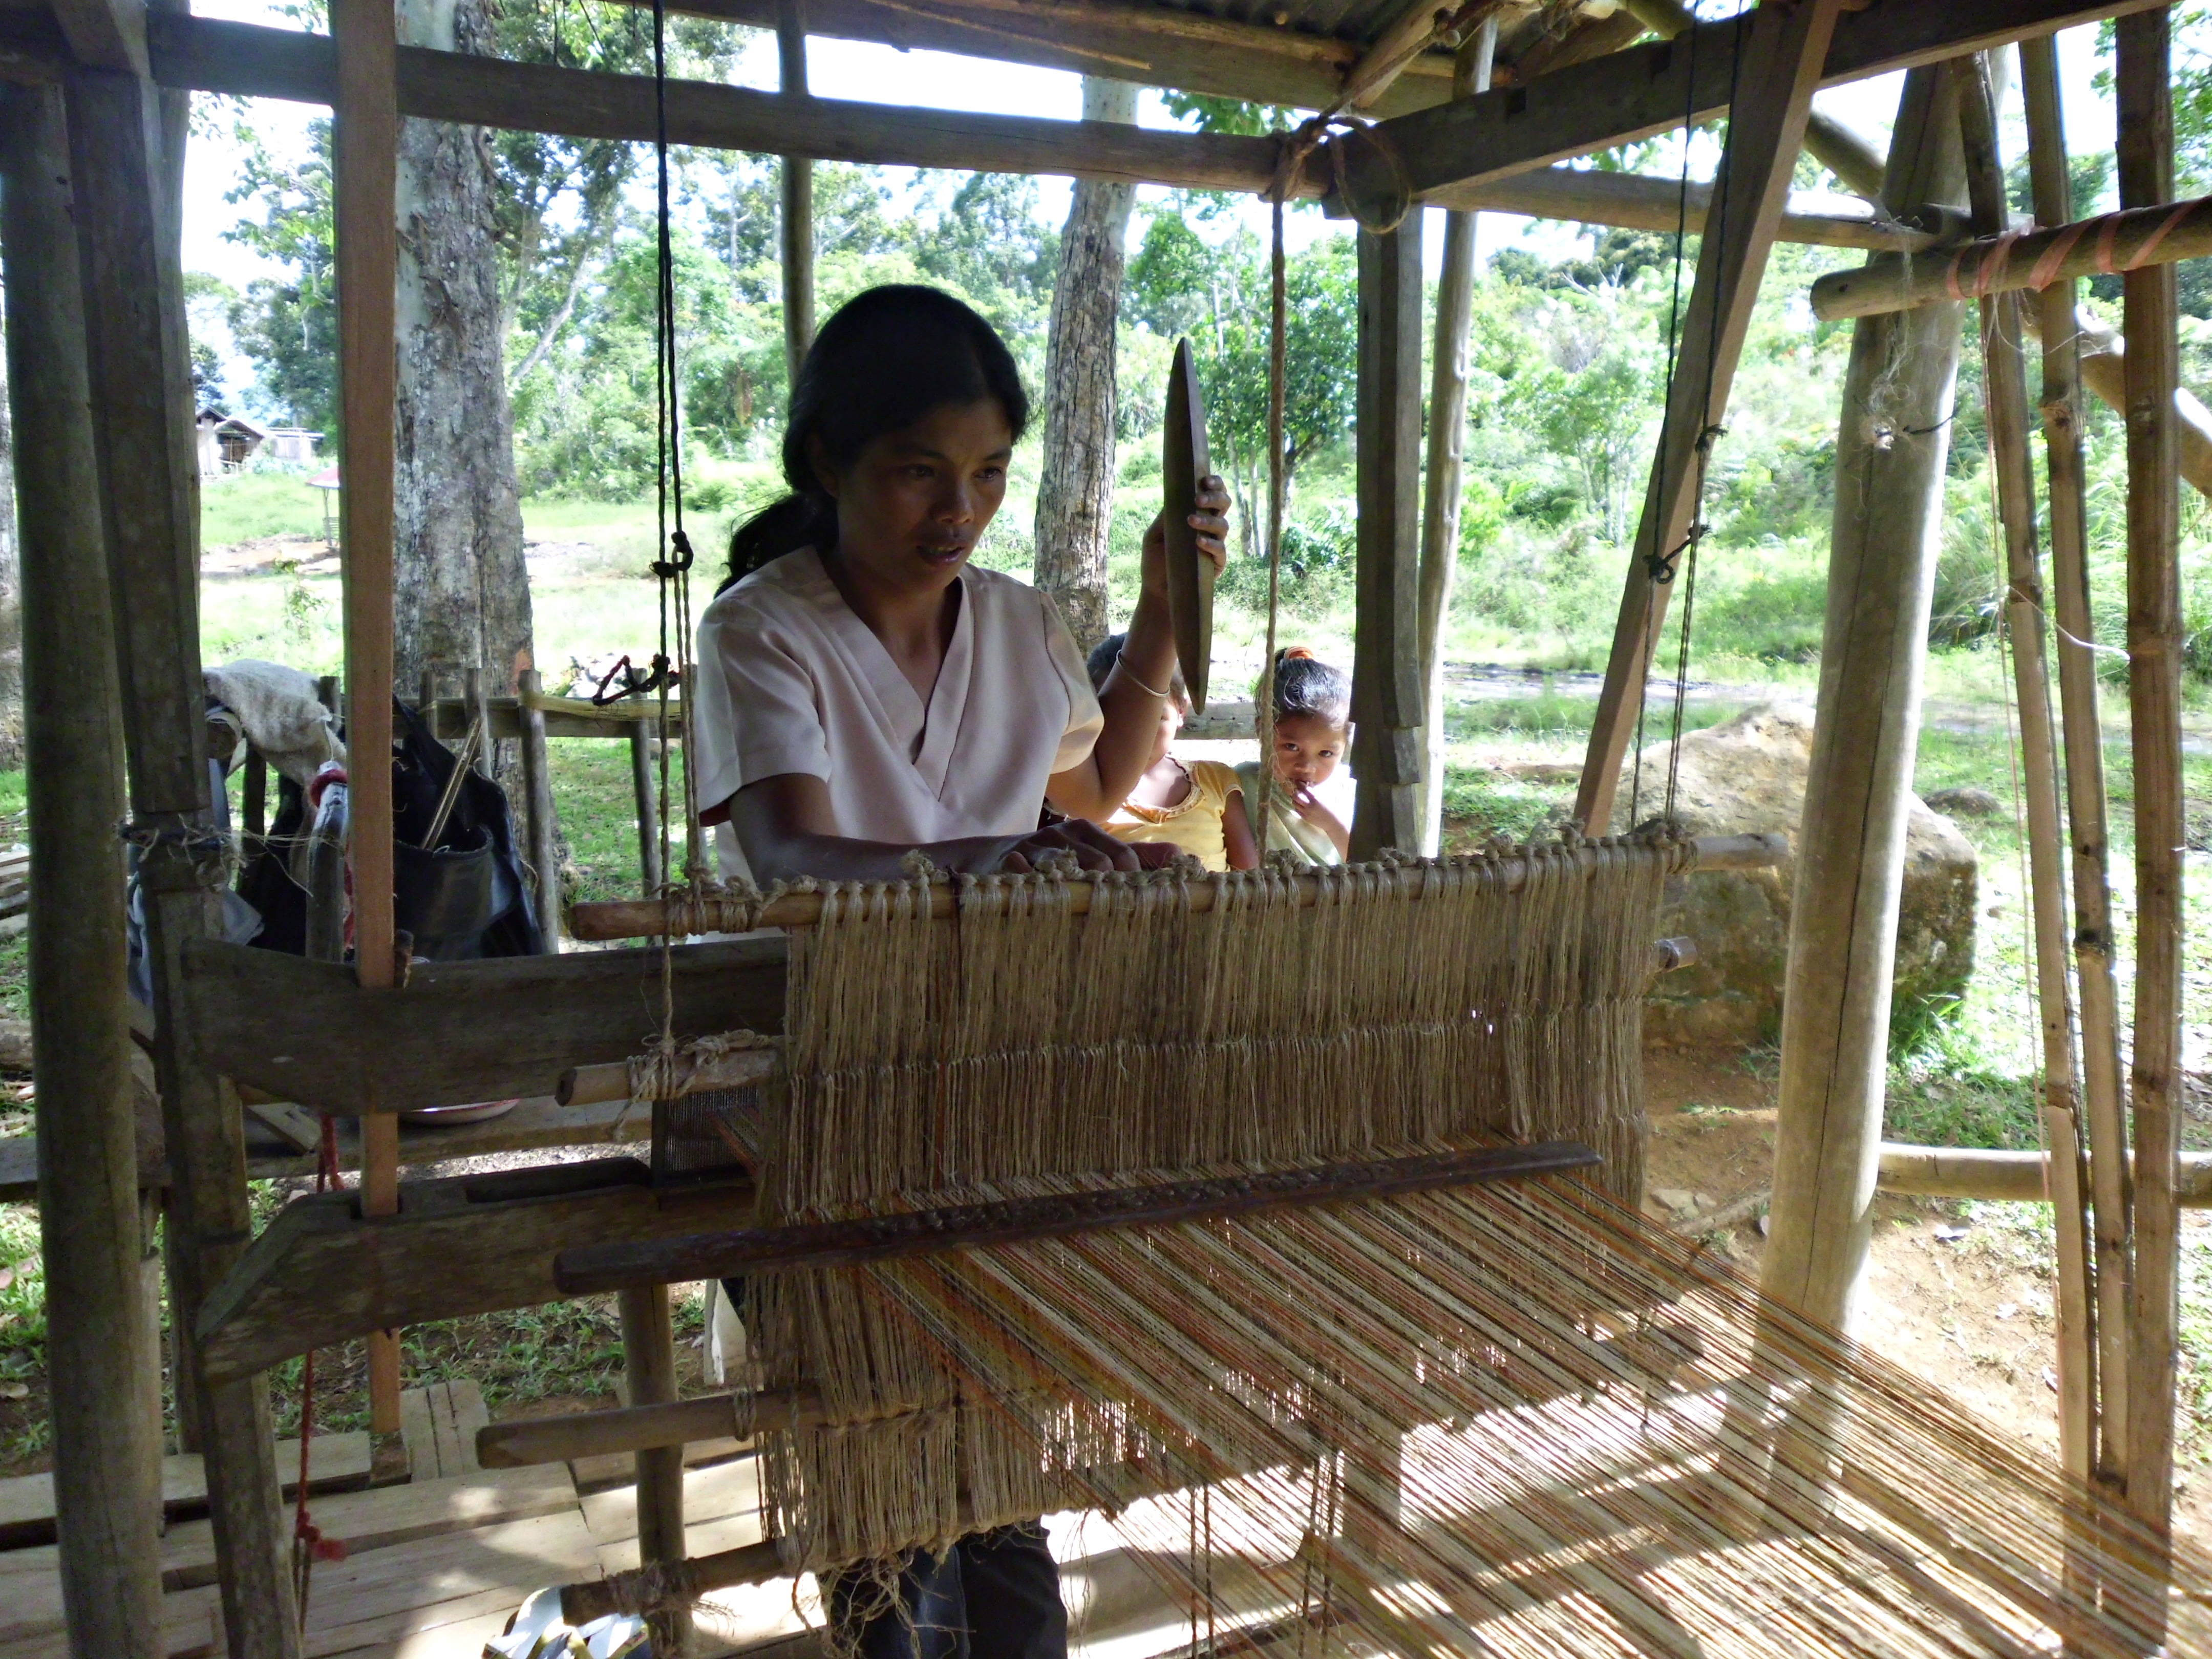 5. higaunon artisan weaving hinabol or the community s traditional hand woven textile